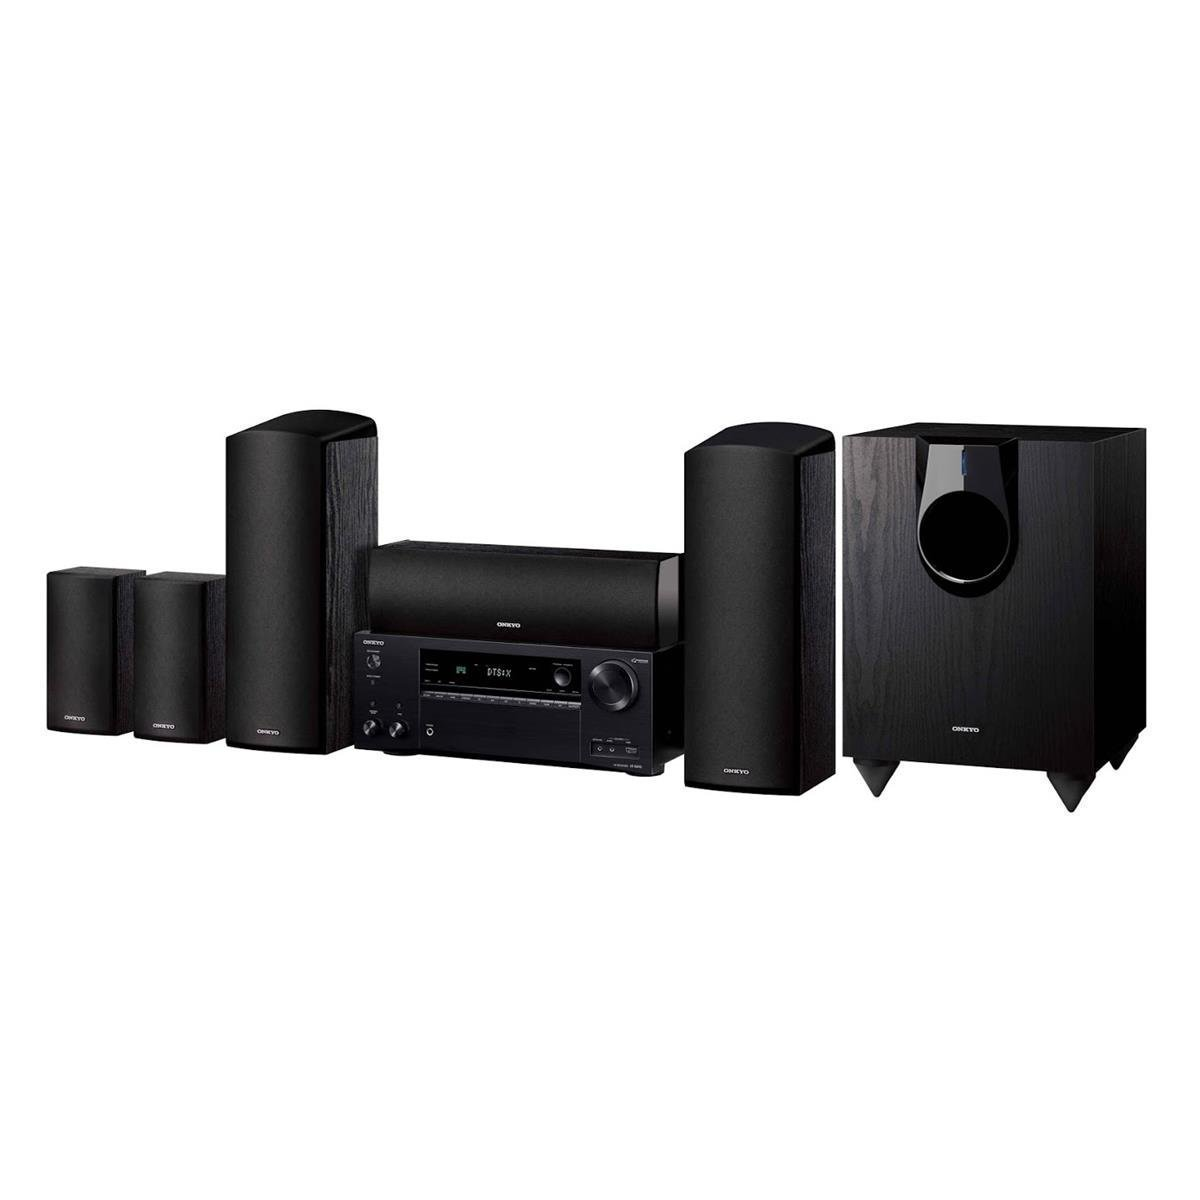 Best 5.1 Home Theater System 2017 2